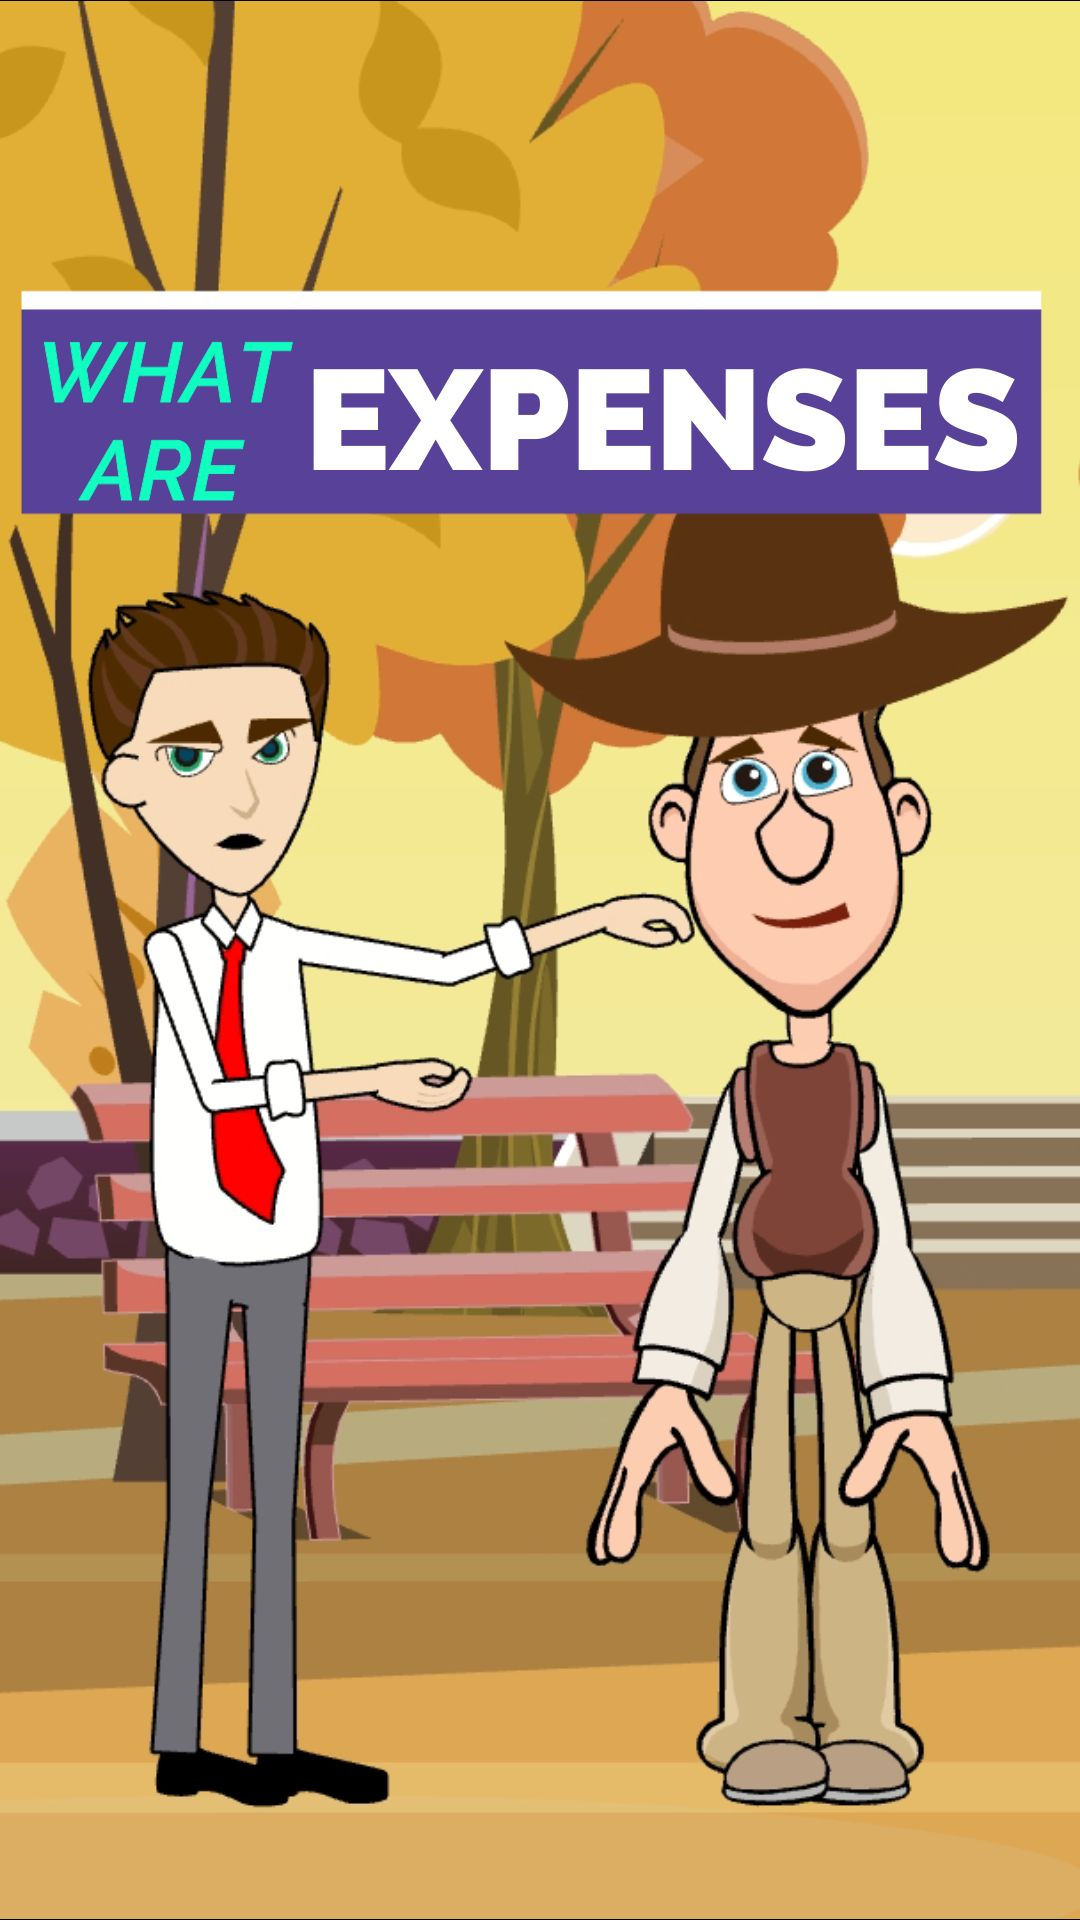 Income and Expenses - Expenses - Shorts